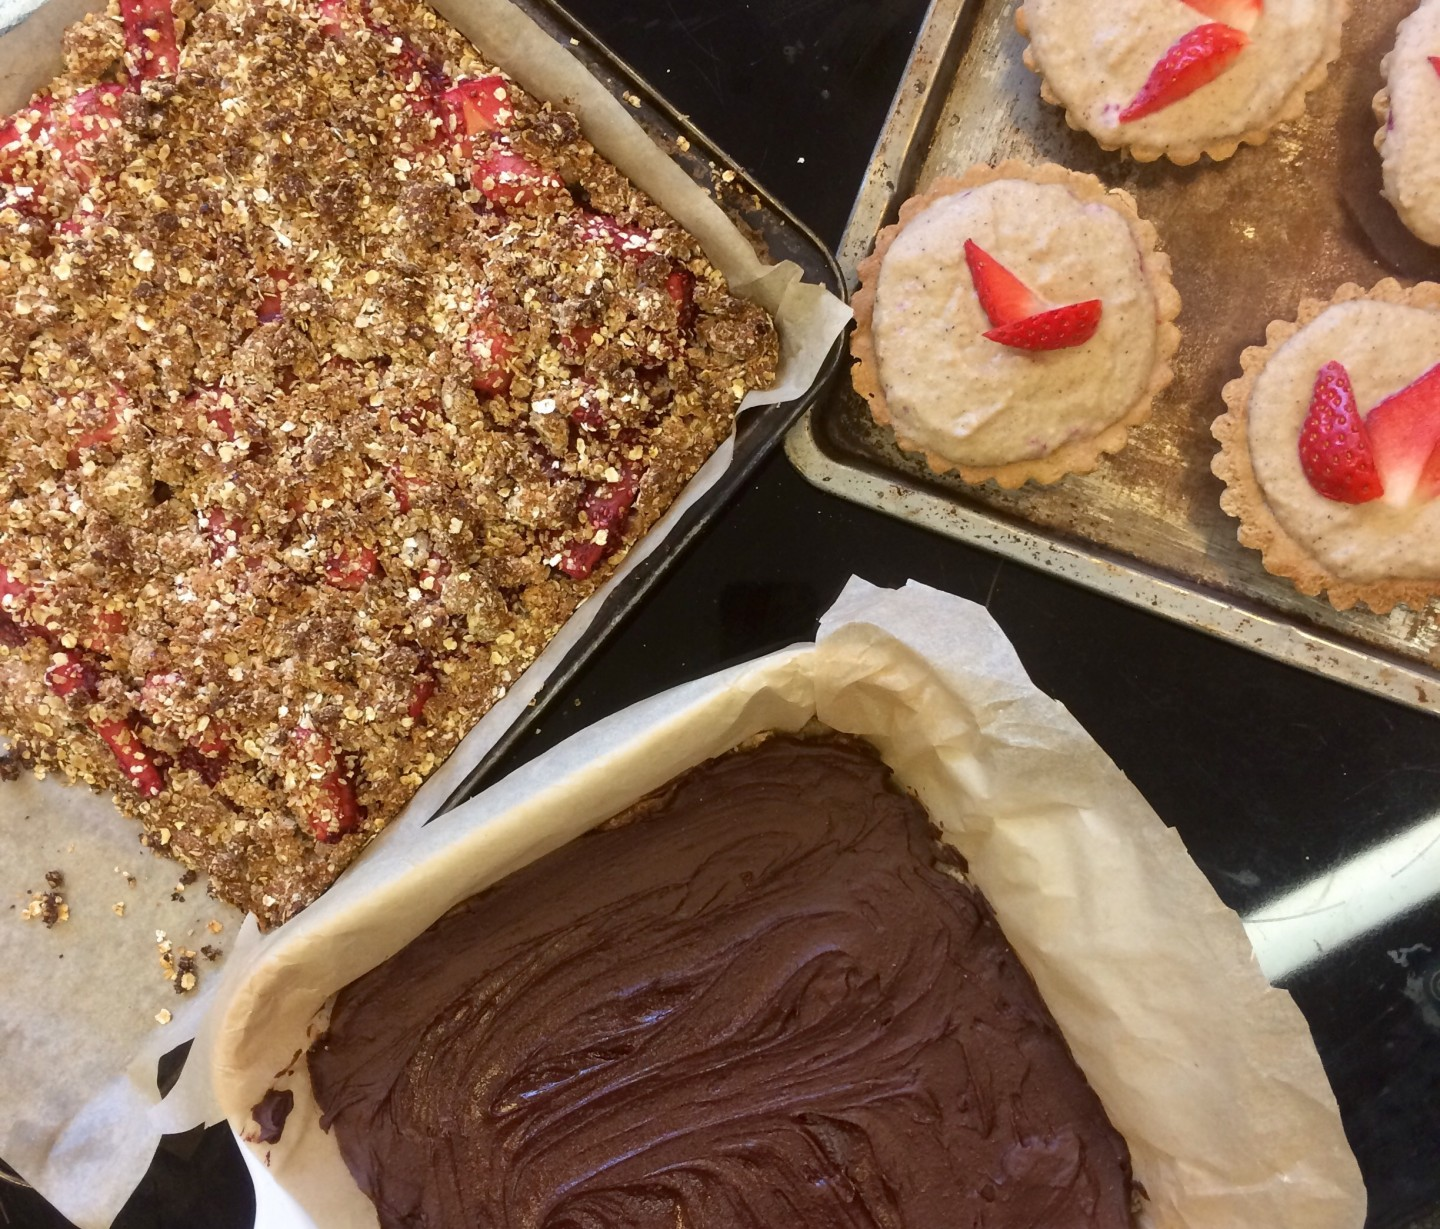 Livia's Kitchen Baking Course | Review